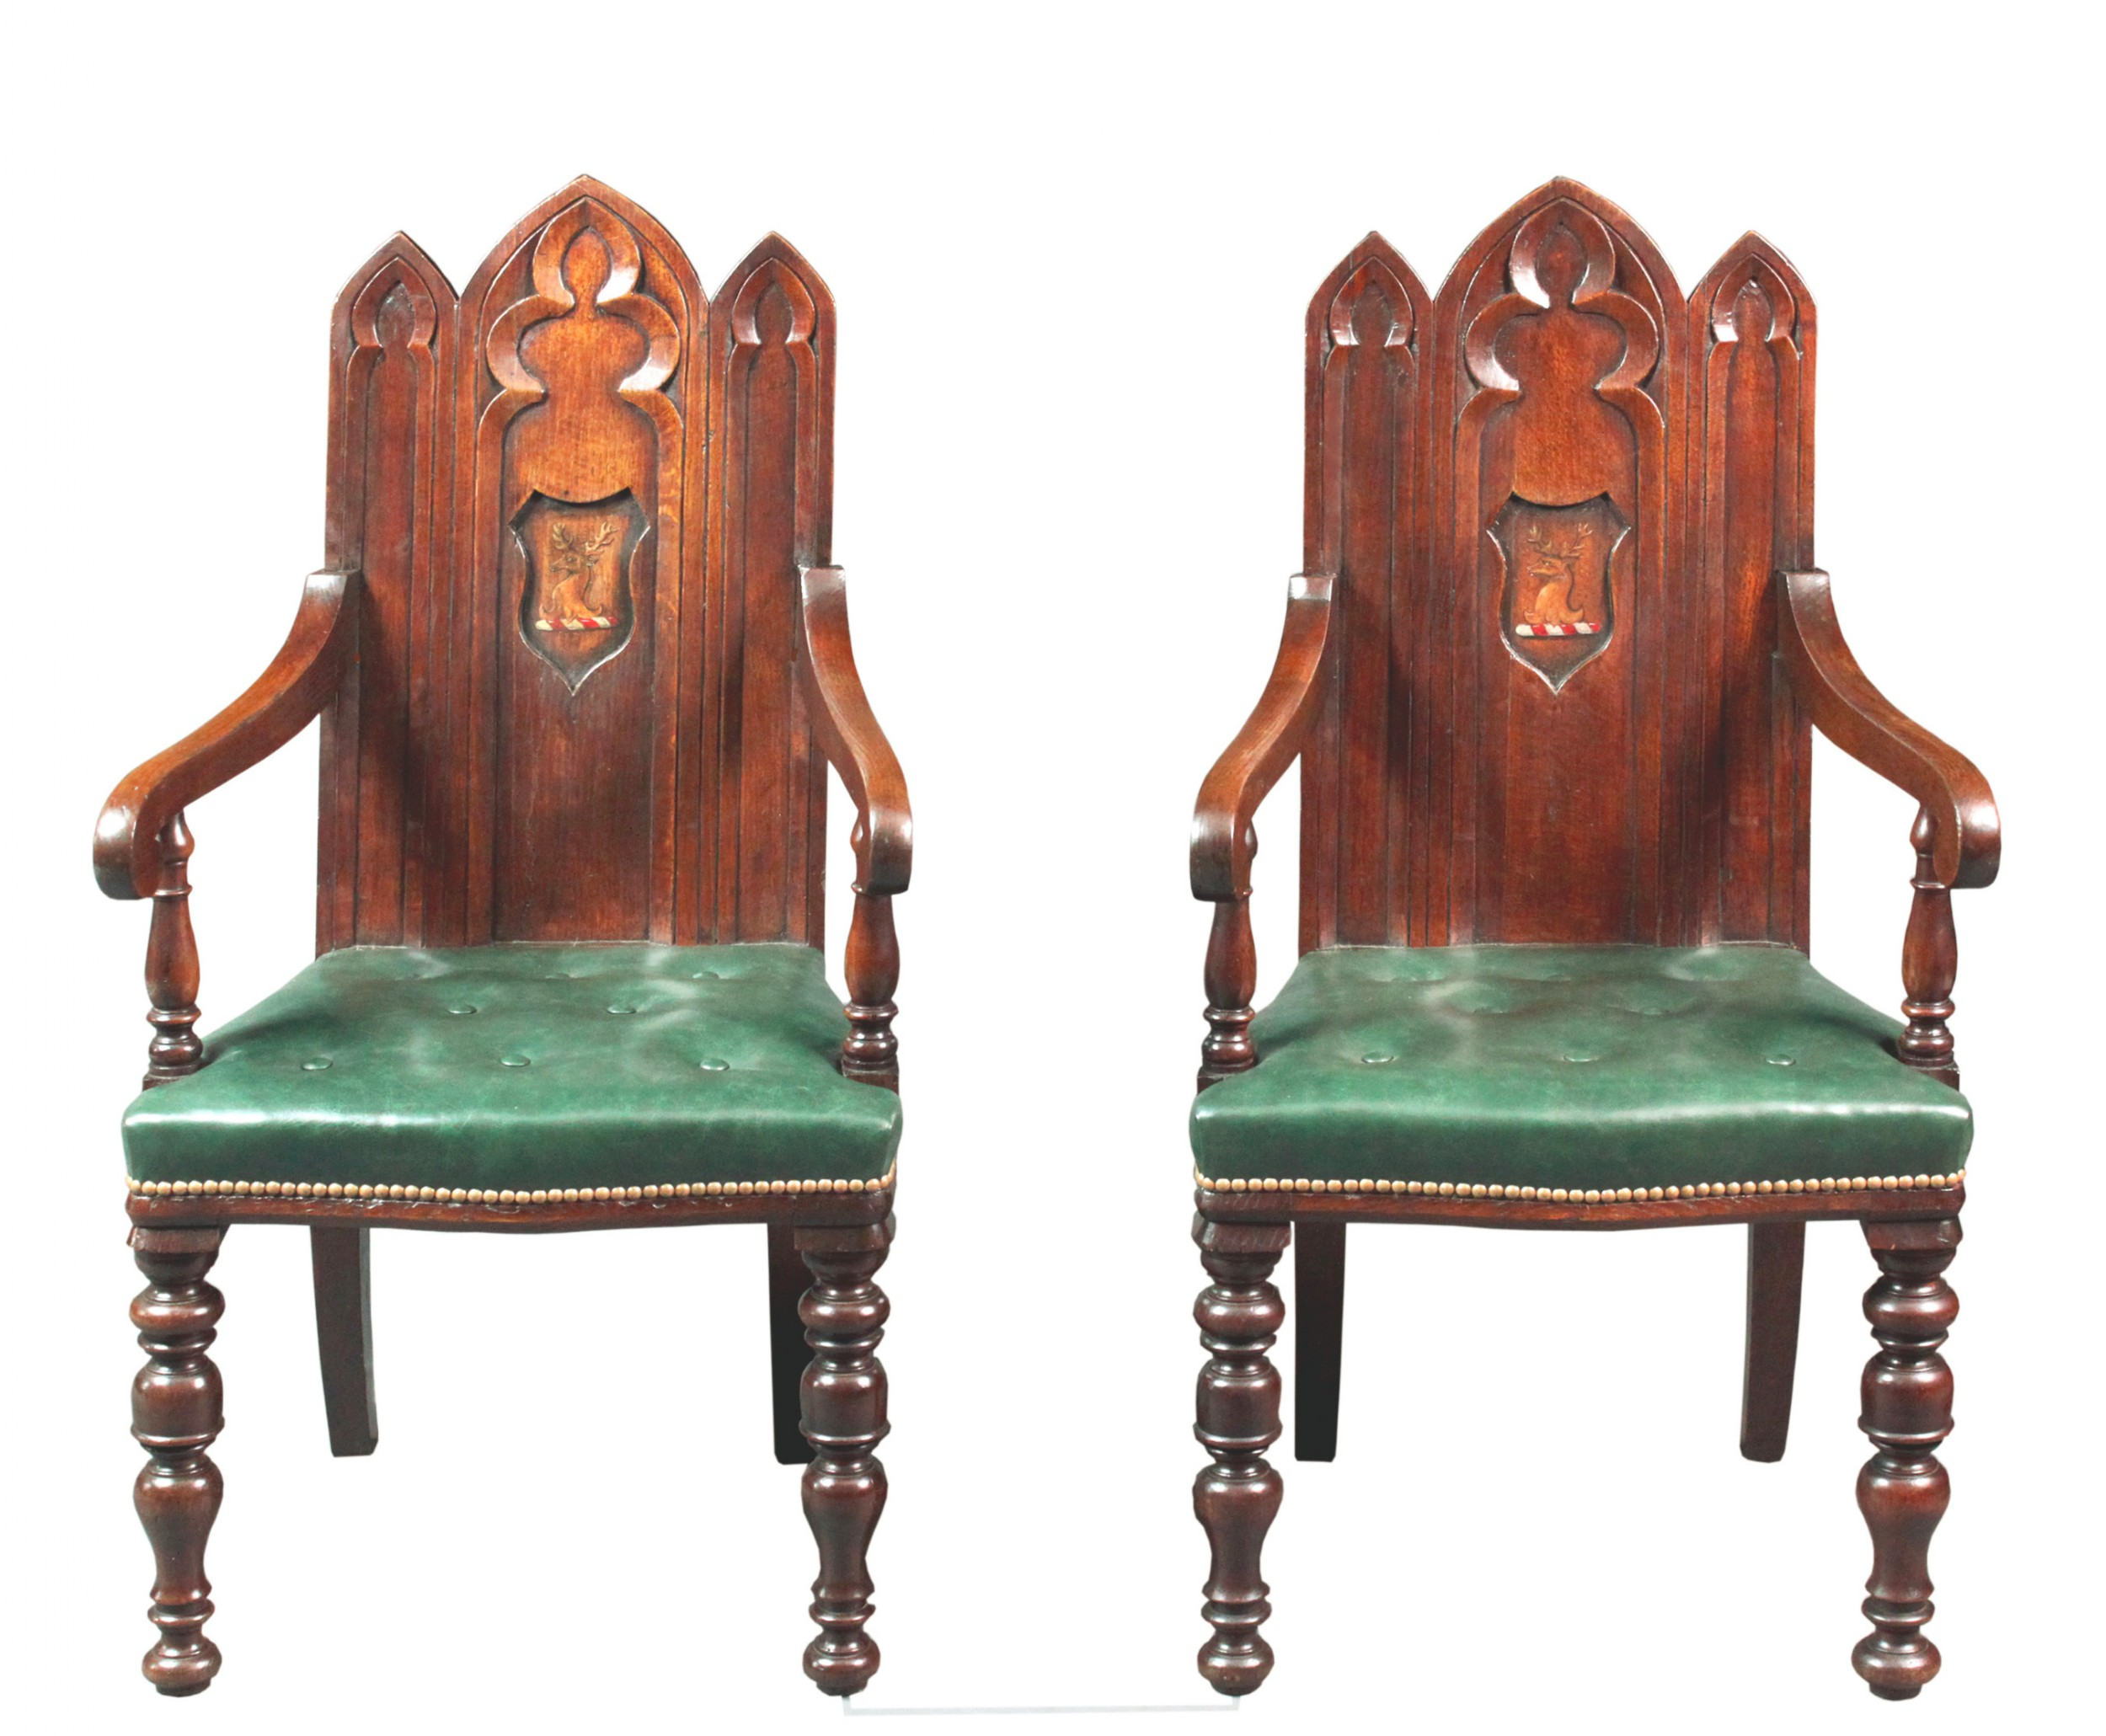 a pair of armorial gothic oak hall chairs with arms